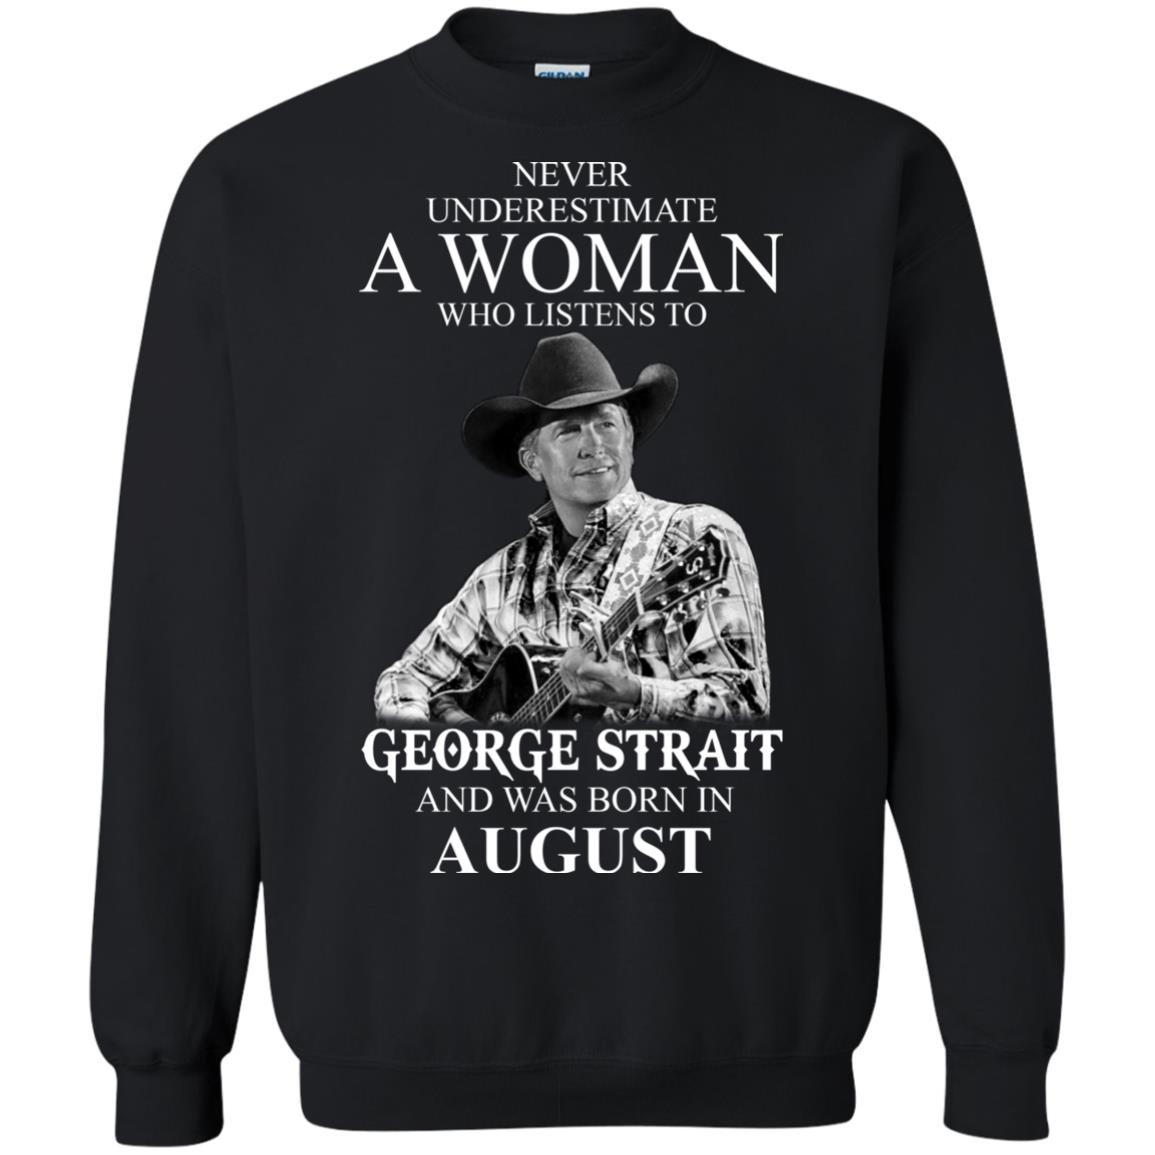 image 392 - Never Underestimate A Woman Who Listens To George Strait And Was Born In August shirt